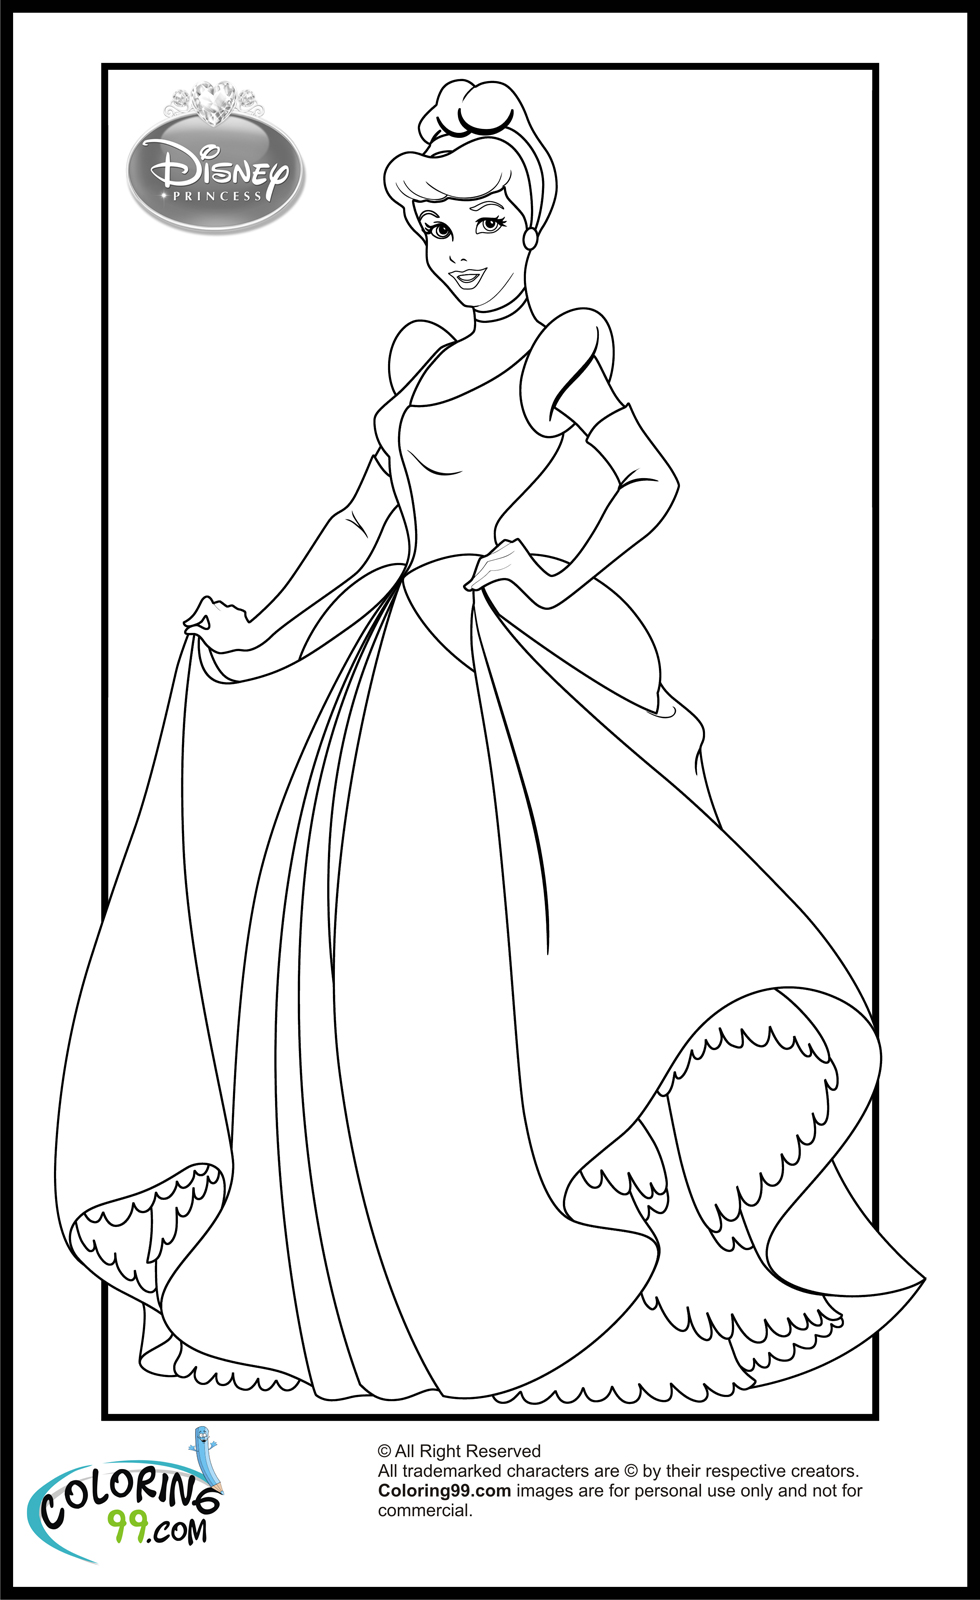 Disney princess coloring worksheets